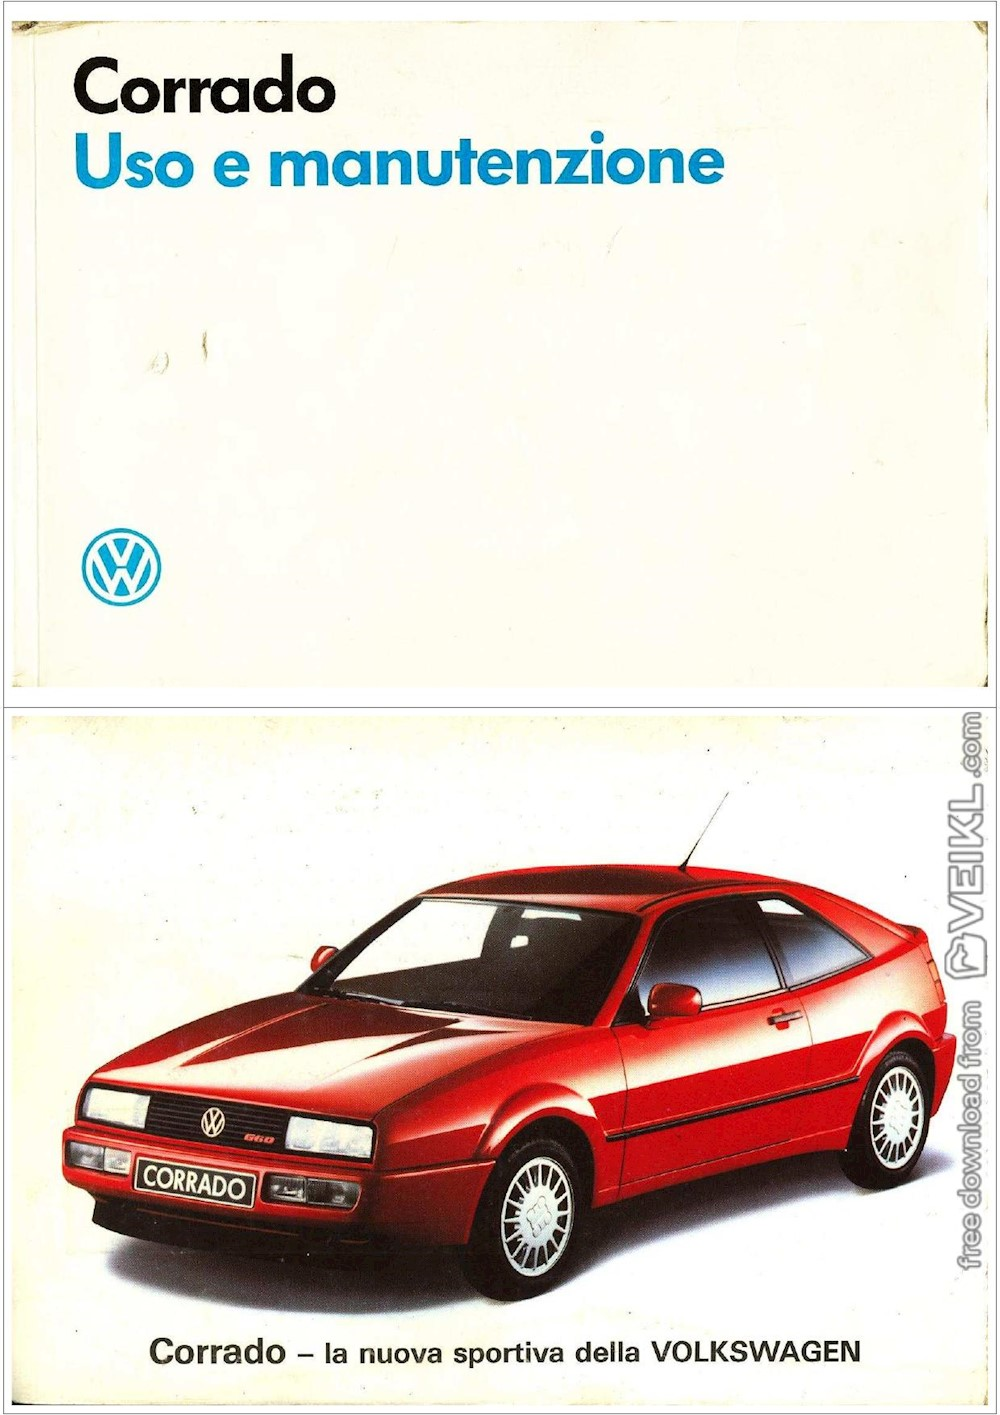 Volkswagen Corrado Owner's manual 1989 IT - Veikl